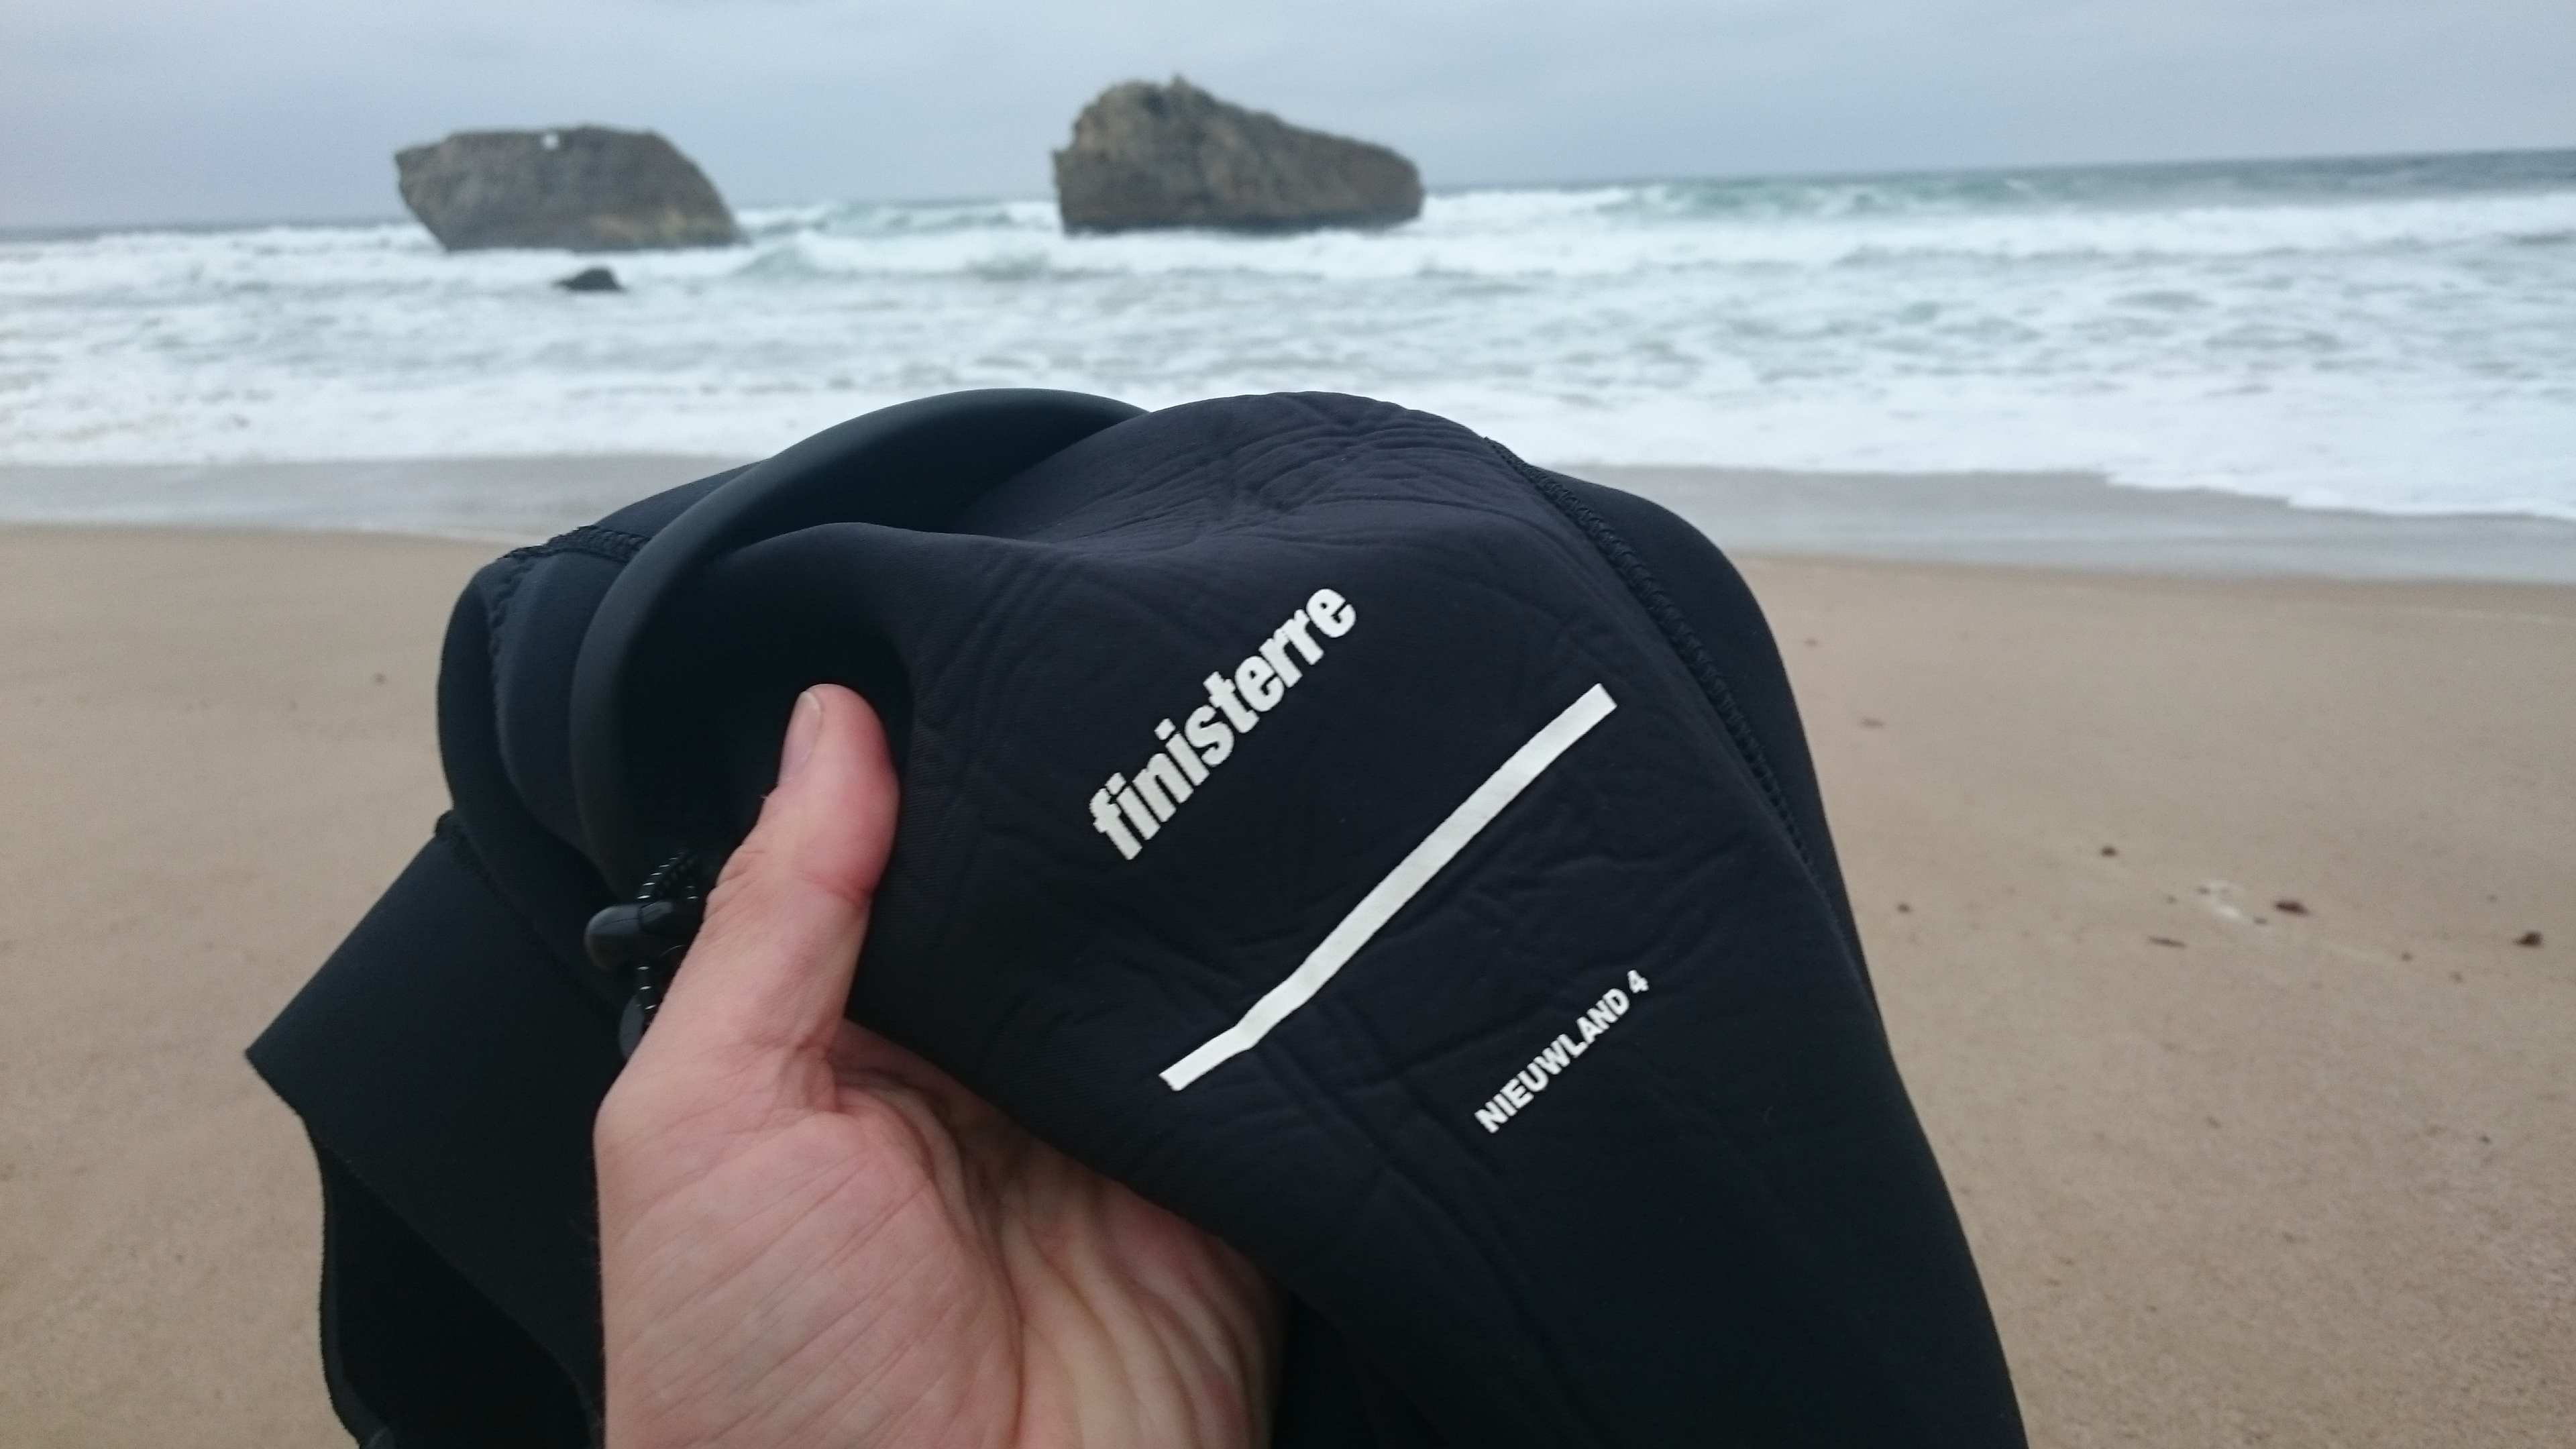 Finisterre nieuwland 4 wetsuit review